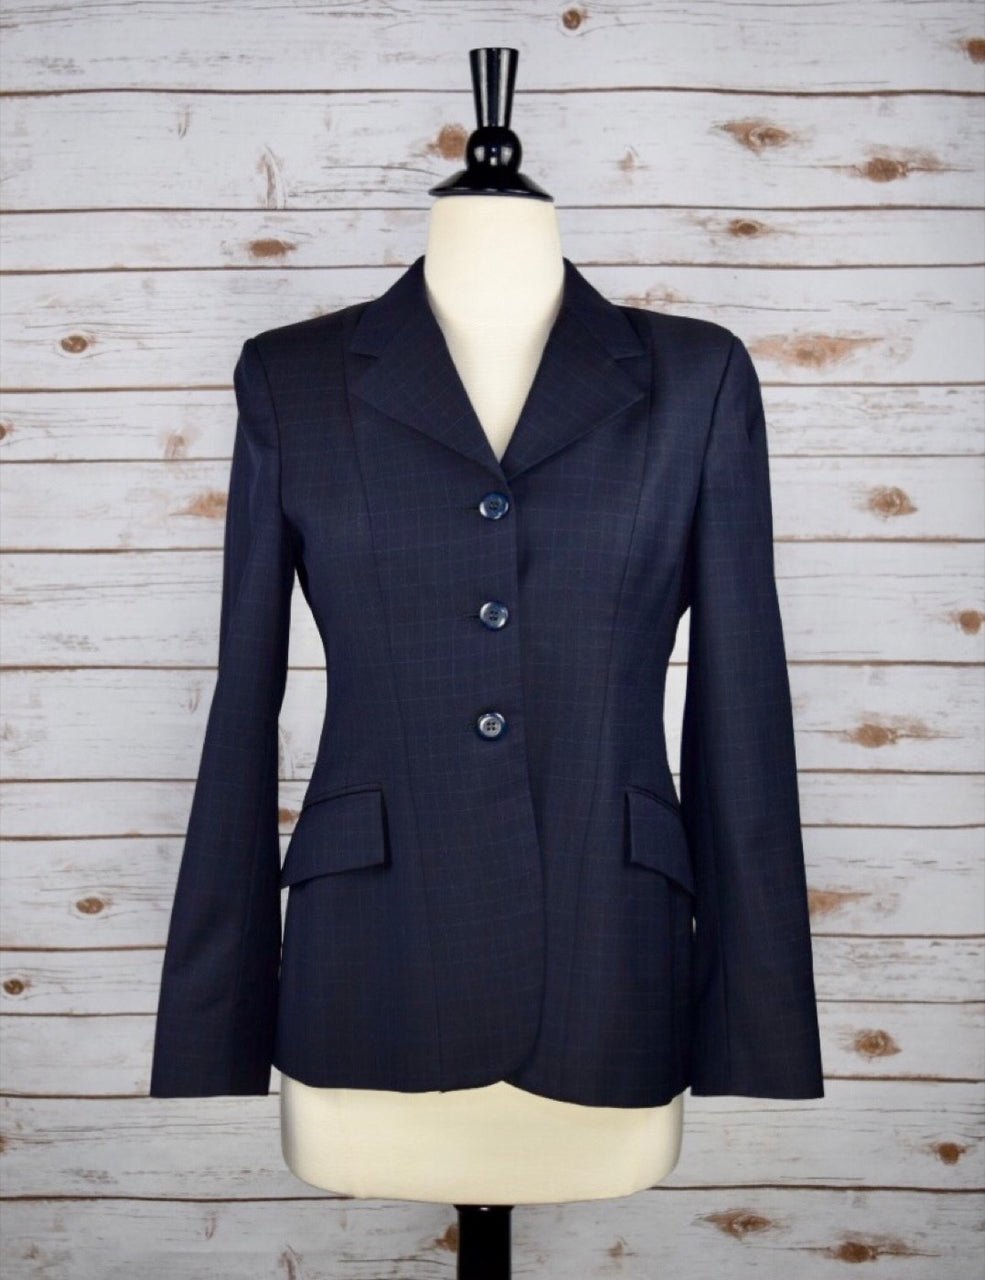 Grand Prix Hunt Coat in Navy Check  - Women's 10S (US 4S)